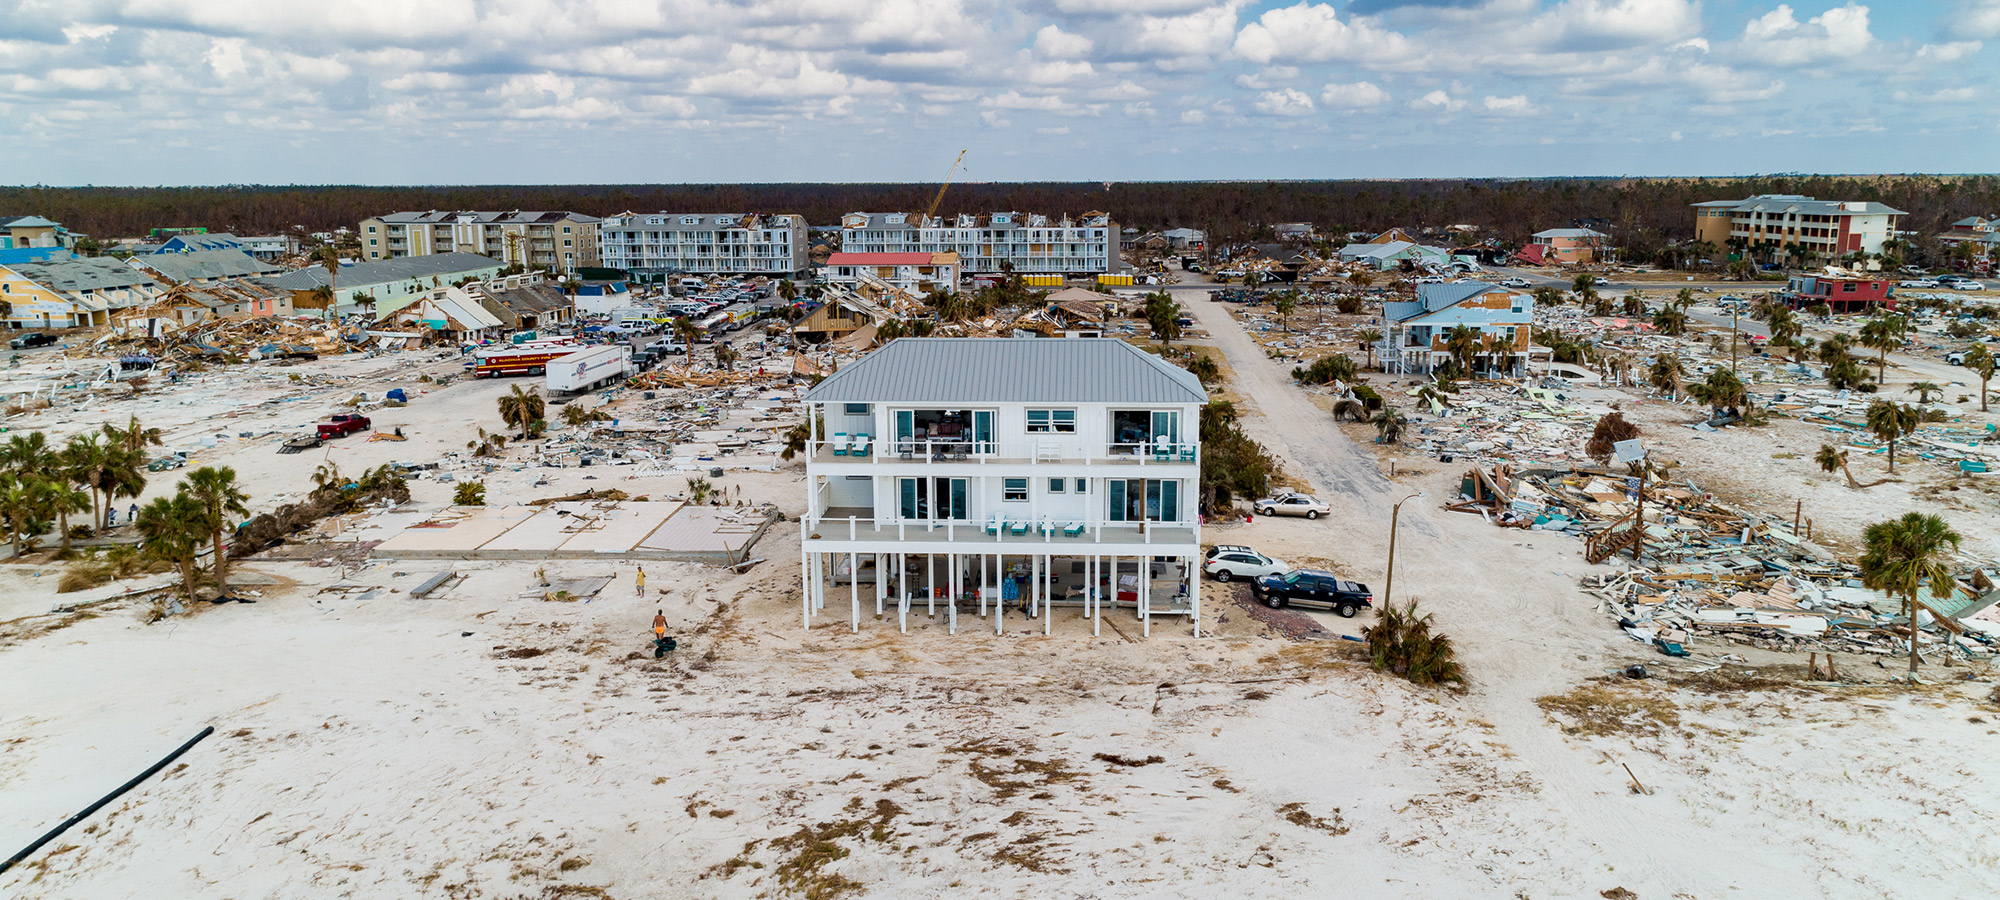 Hurricanes Destroy Beachside Homes But Not This One Popular Science,Creative Cv Format For Graphic Designer